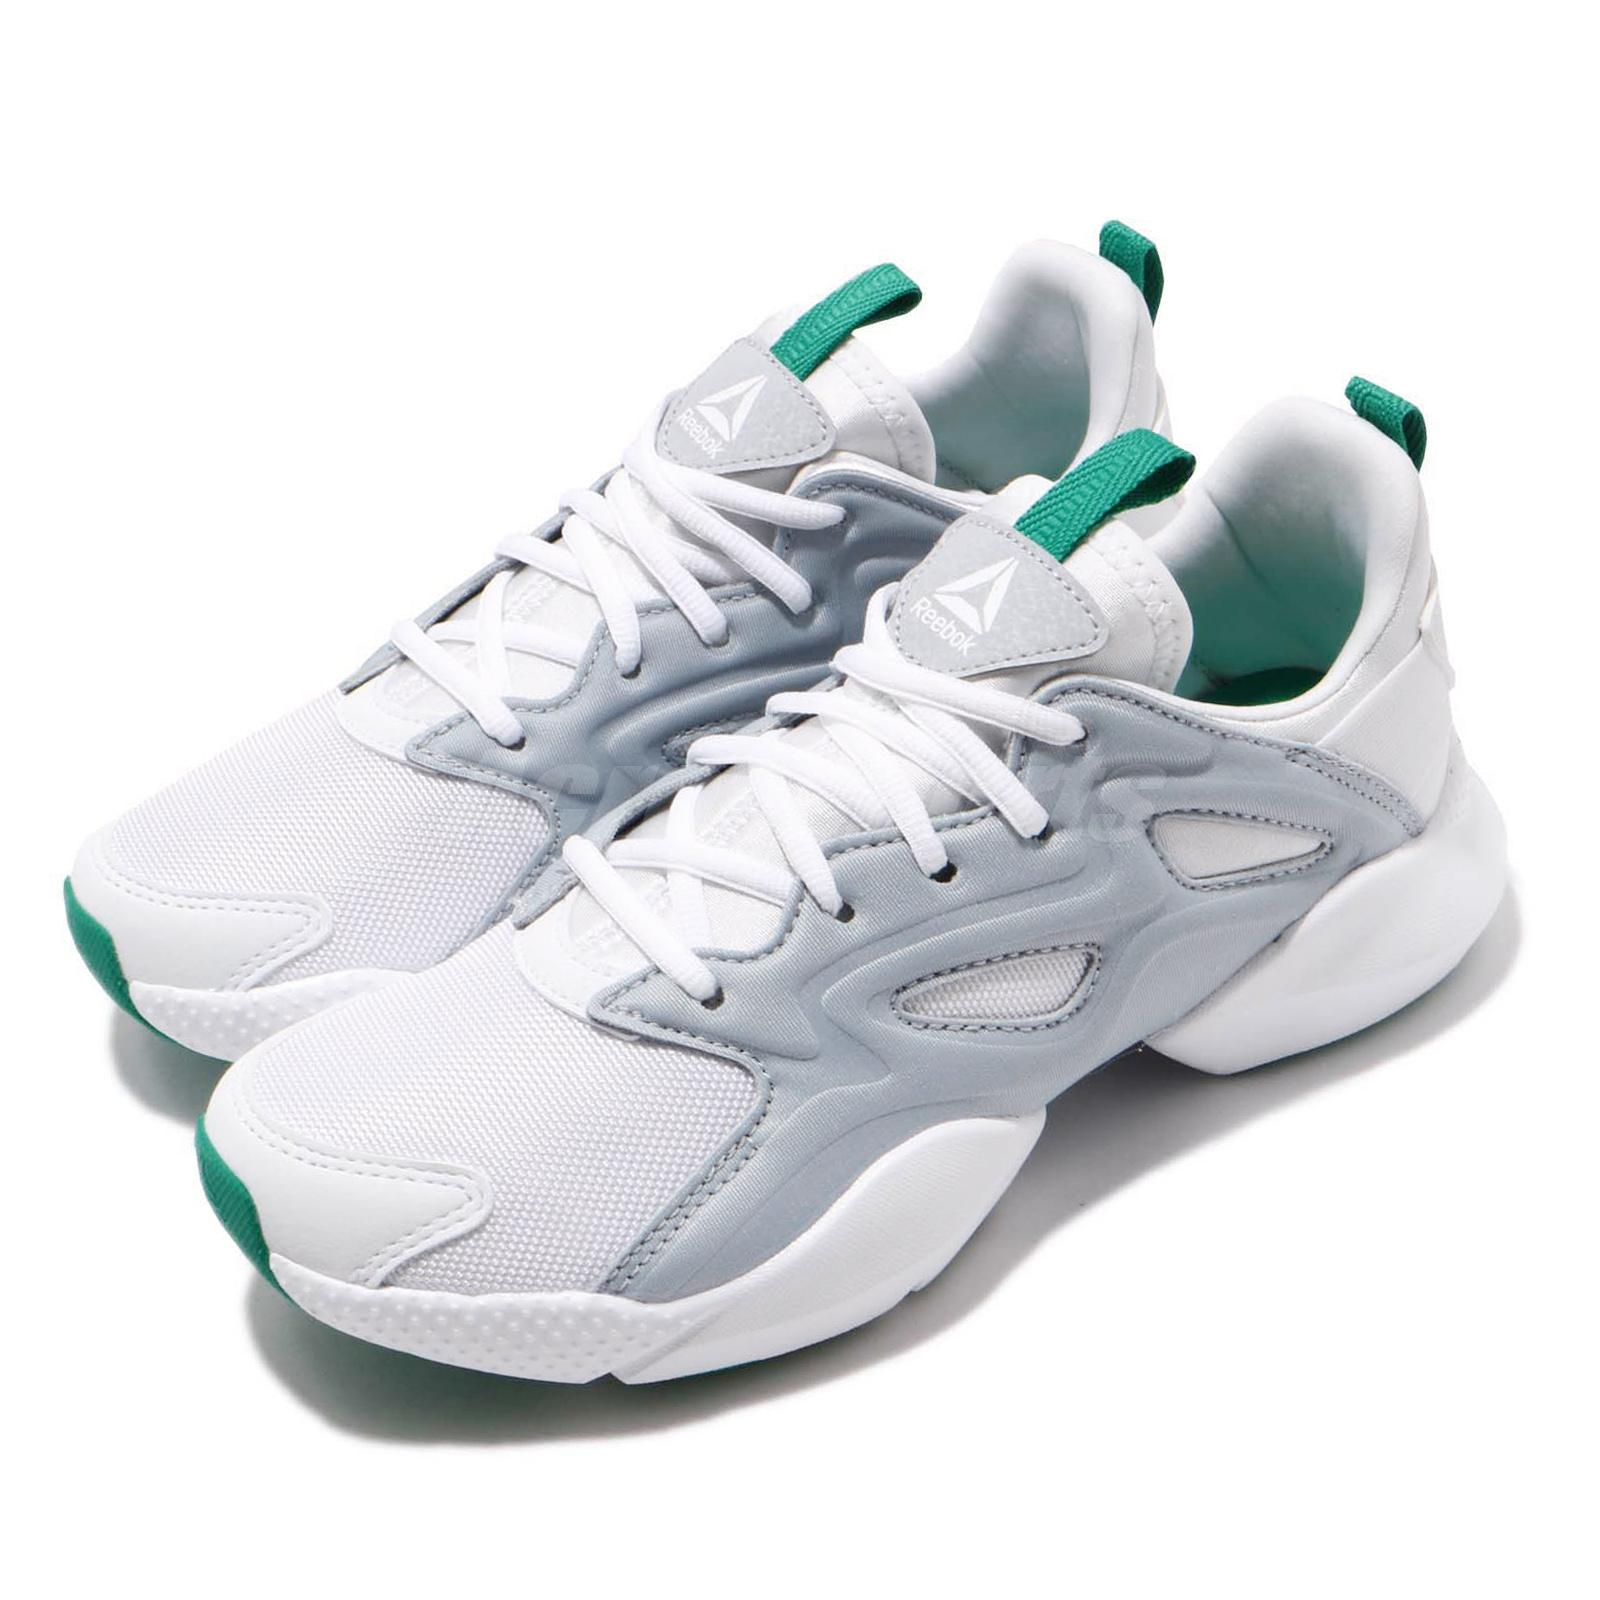 01e89828 Details about Reebok Sole Fury Adapt White Grey Green Women Running Shoes  Sneakers DV8452